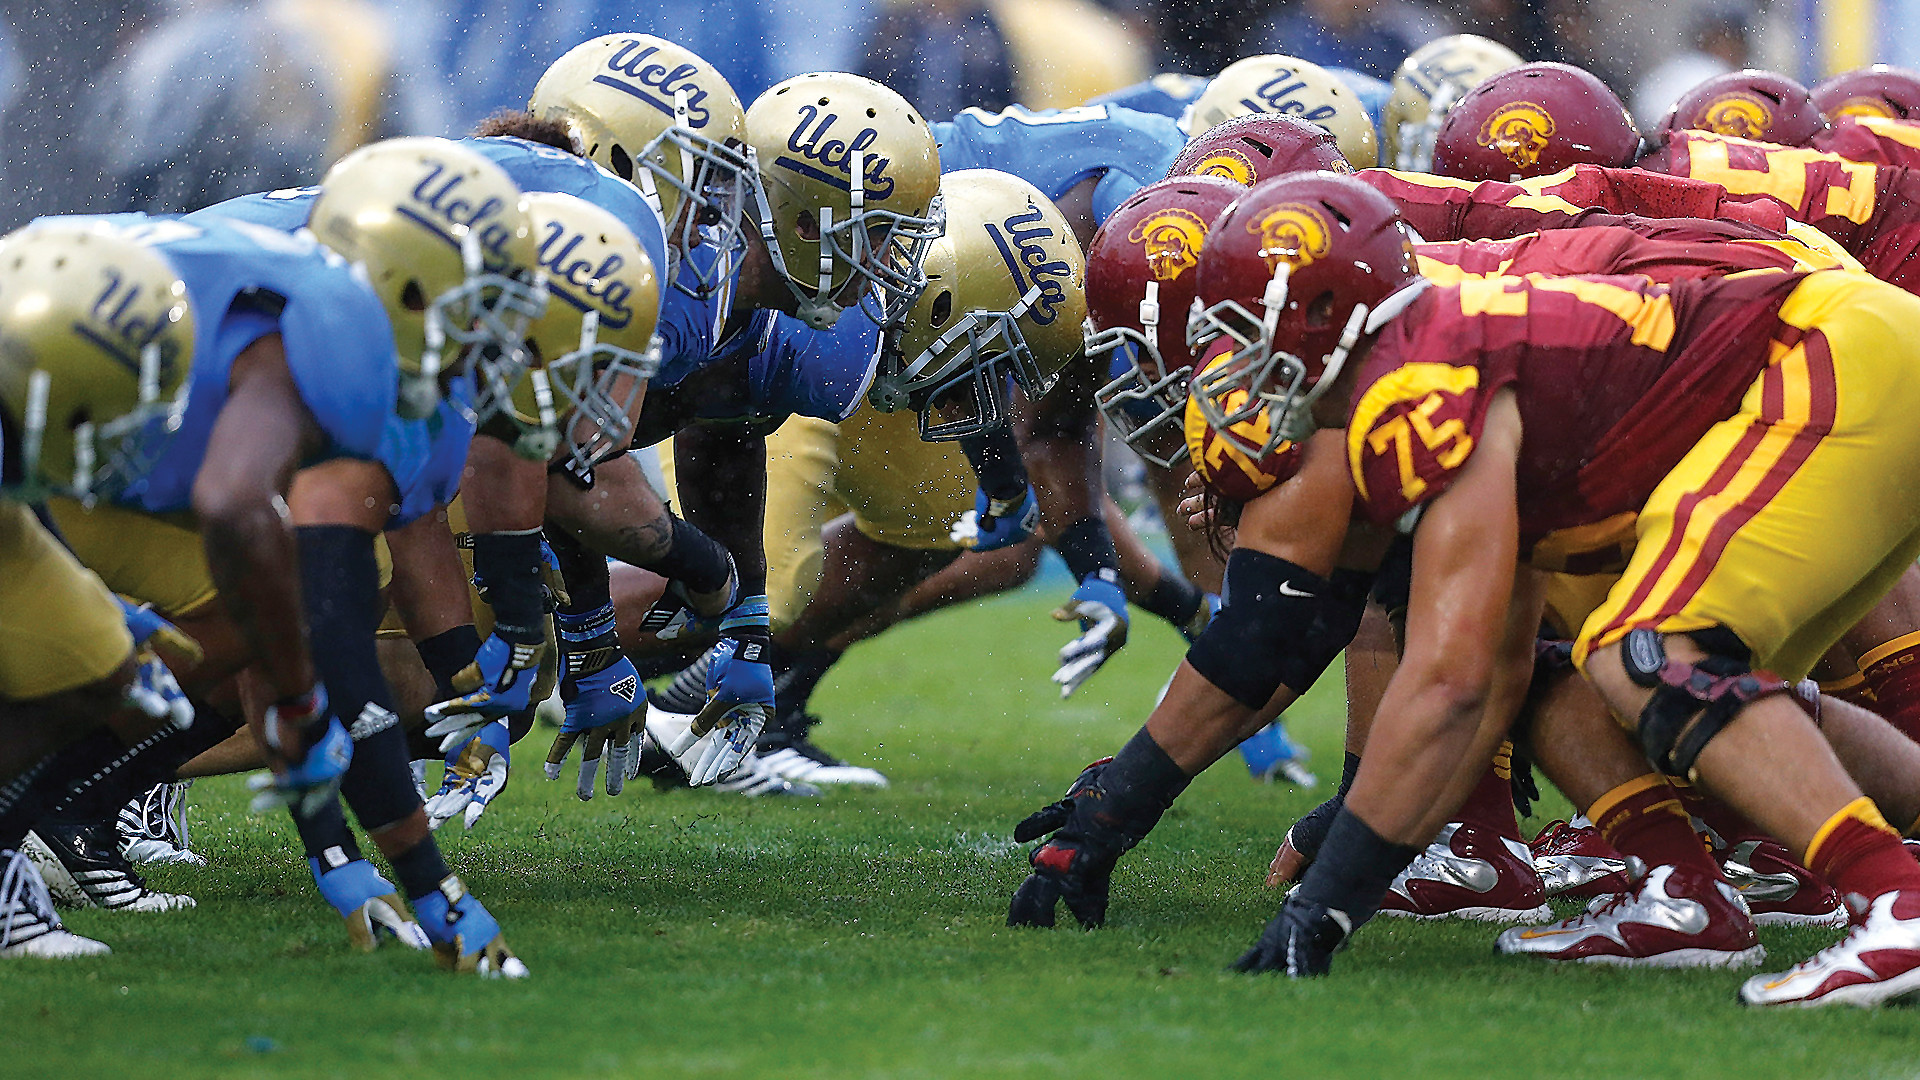 1920x1080 Bruins and Trojans on the line of scrimmage during the 2012 Crosstown  Rivalry Clash, won by UCLA 38-28. Photo courtesy of gentlemensguideoc.com